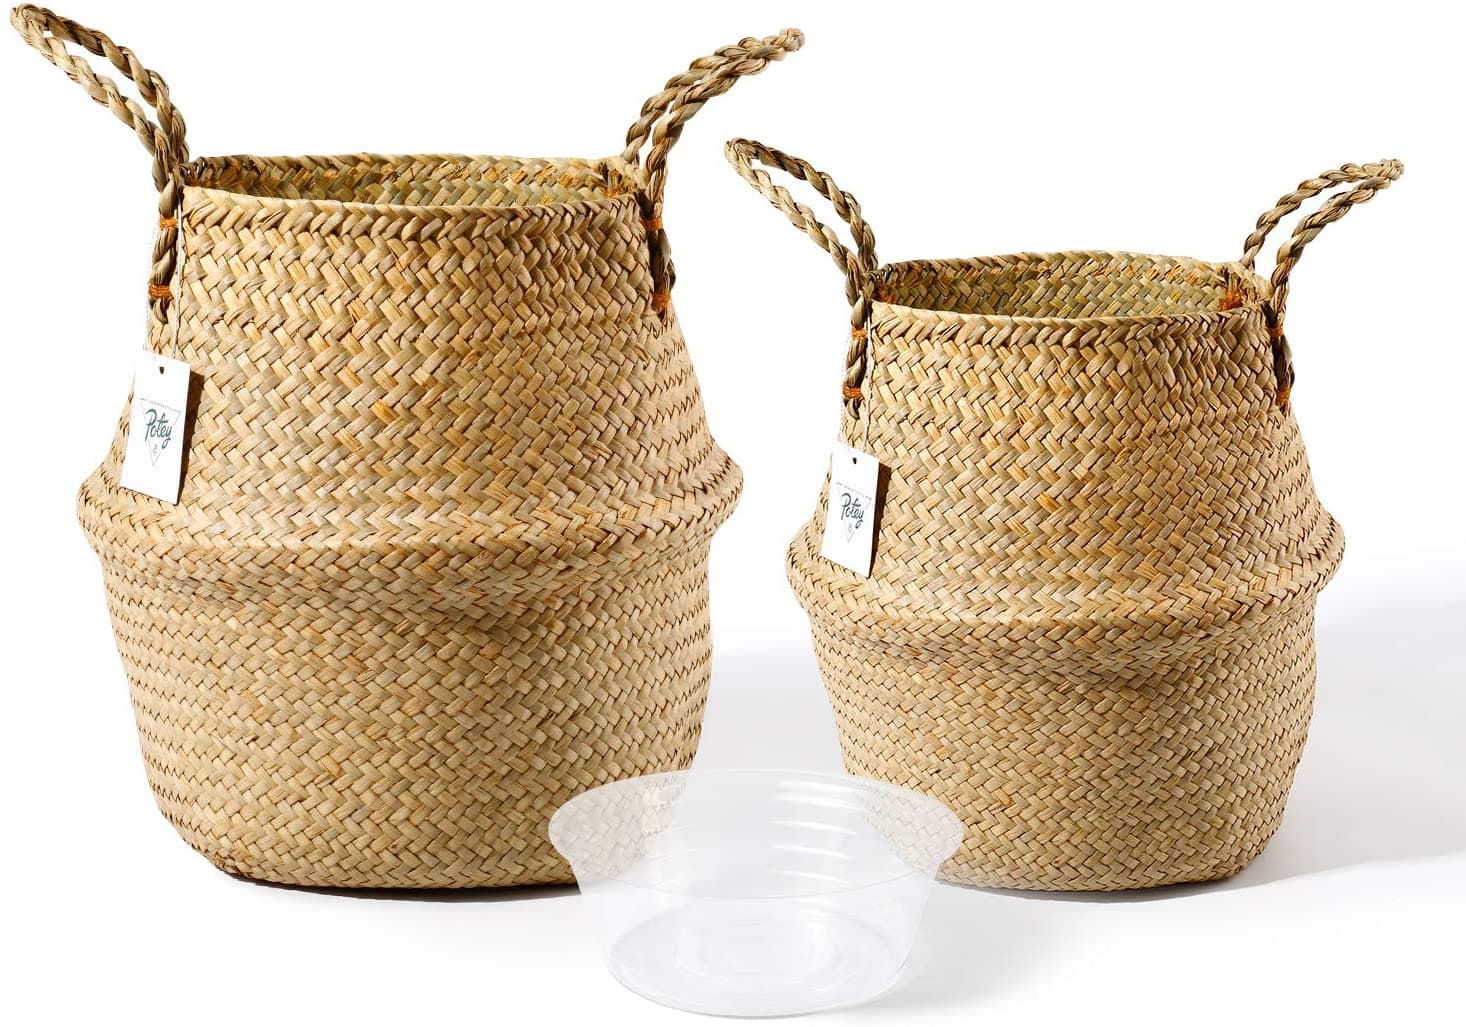 Hand Woven Seagrass Plant Baskets with Handles - Set of 2 $18.84